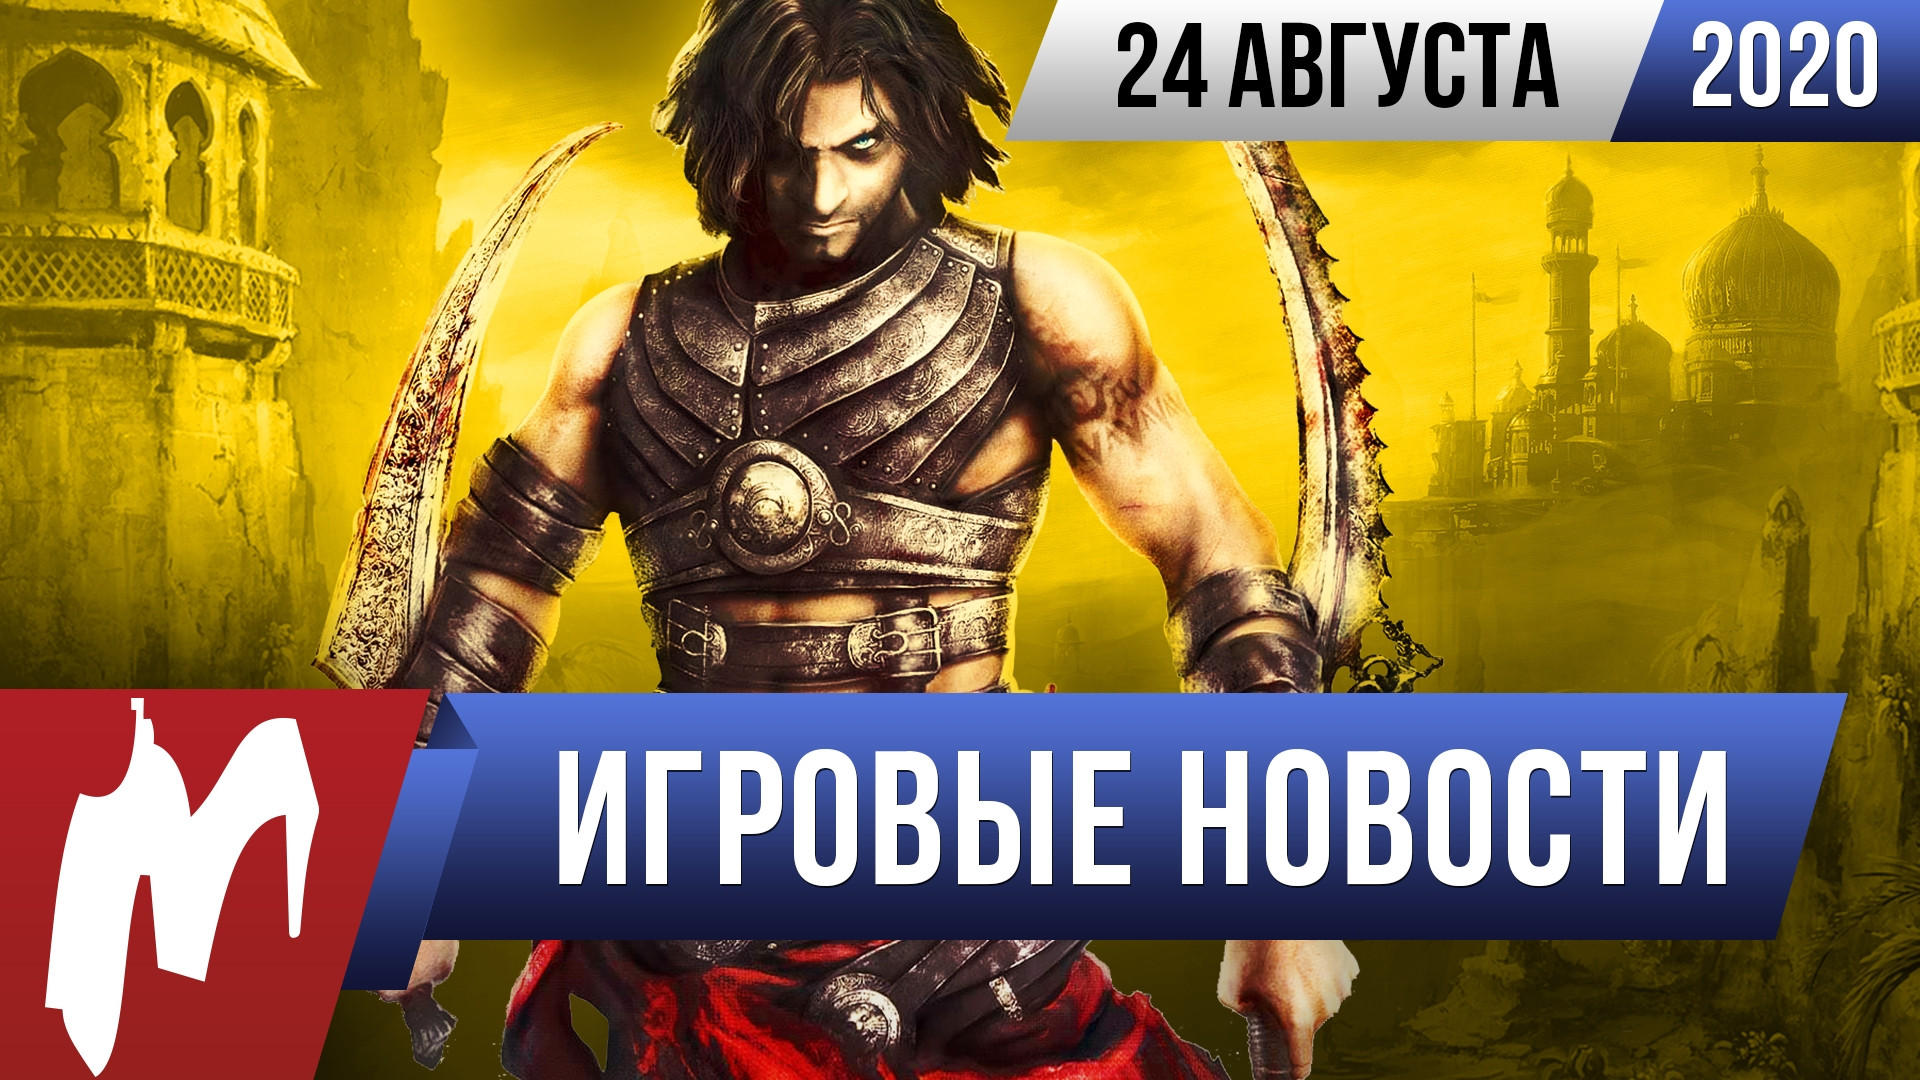 ИТОГИ НЕДЕЛИ 24.08 (Epic Games VS Apple, V:tM Bloodlines 2, Gotham Knights, Prince of Persia Remake)